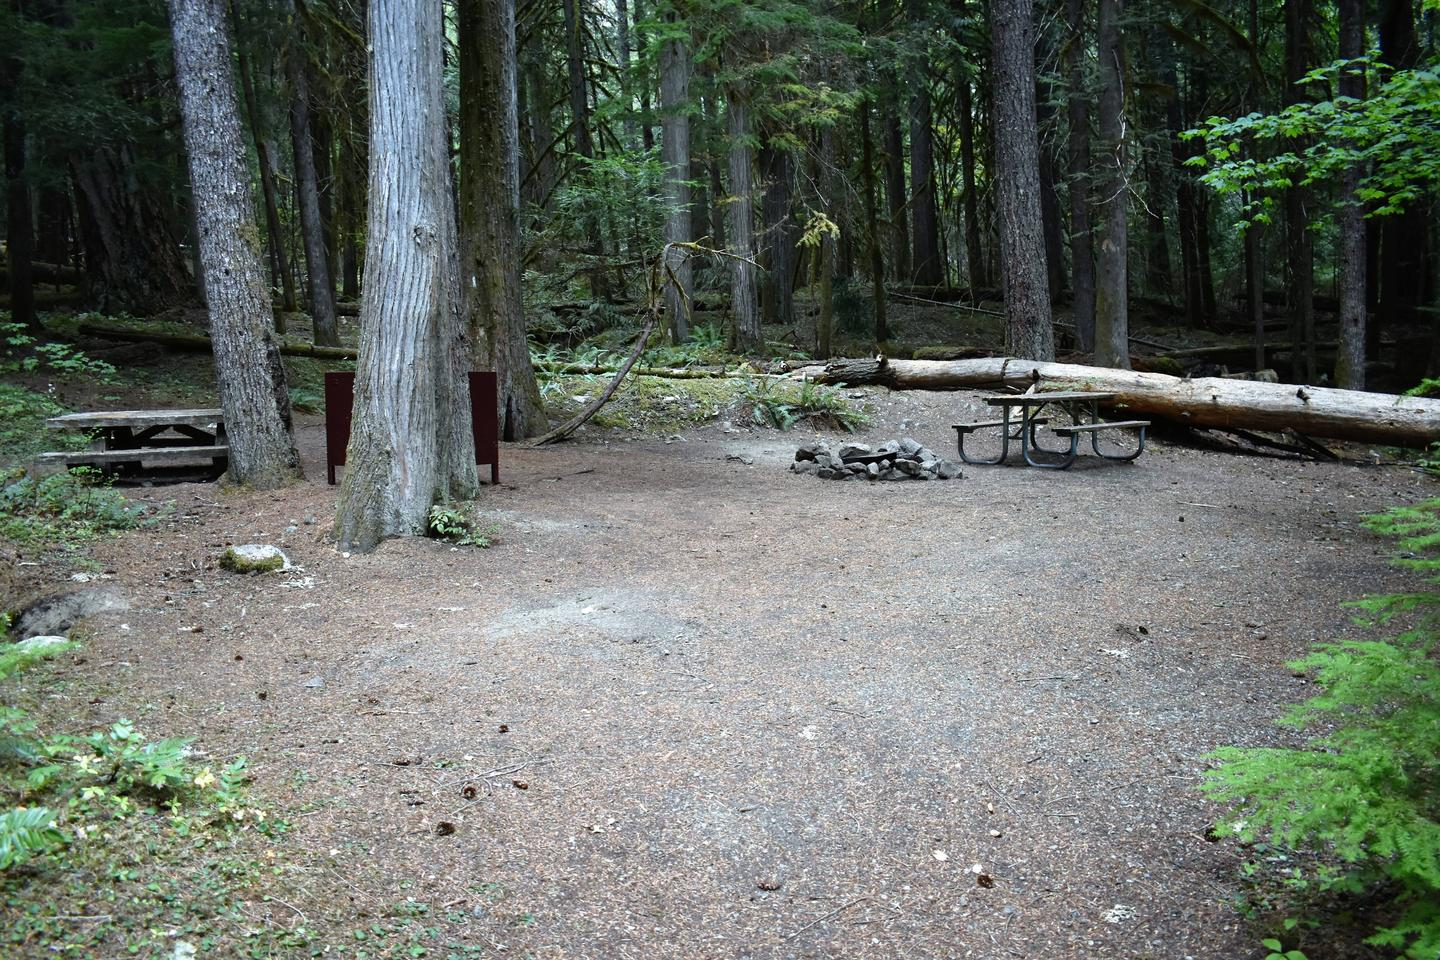 Picnic table, food storage locker, and fire ringView of campsite